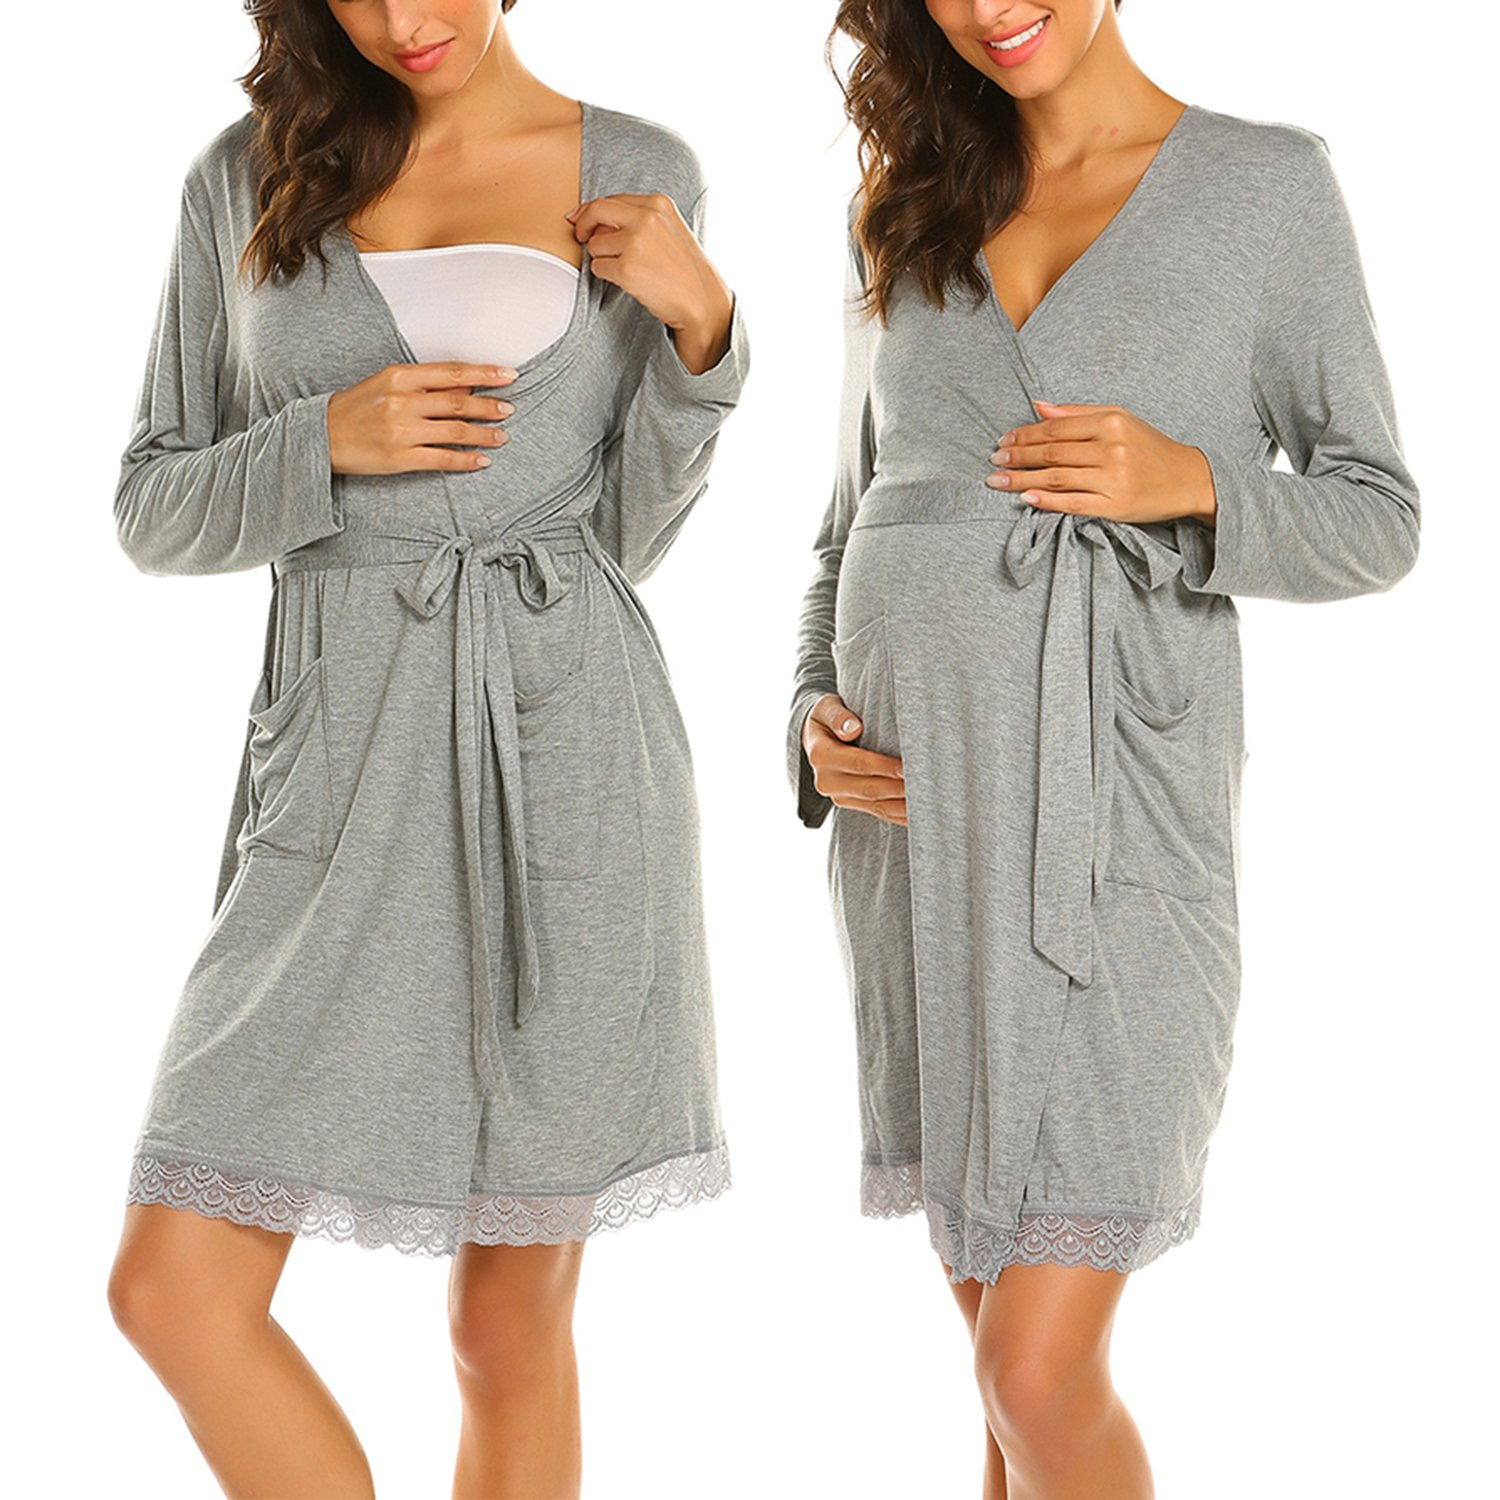 7f9fd94b438 This robe is made with soft comfortable fabric, suitable as maternity wear  and perfect for nursing